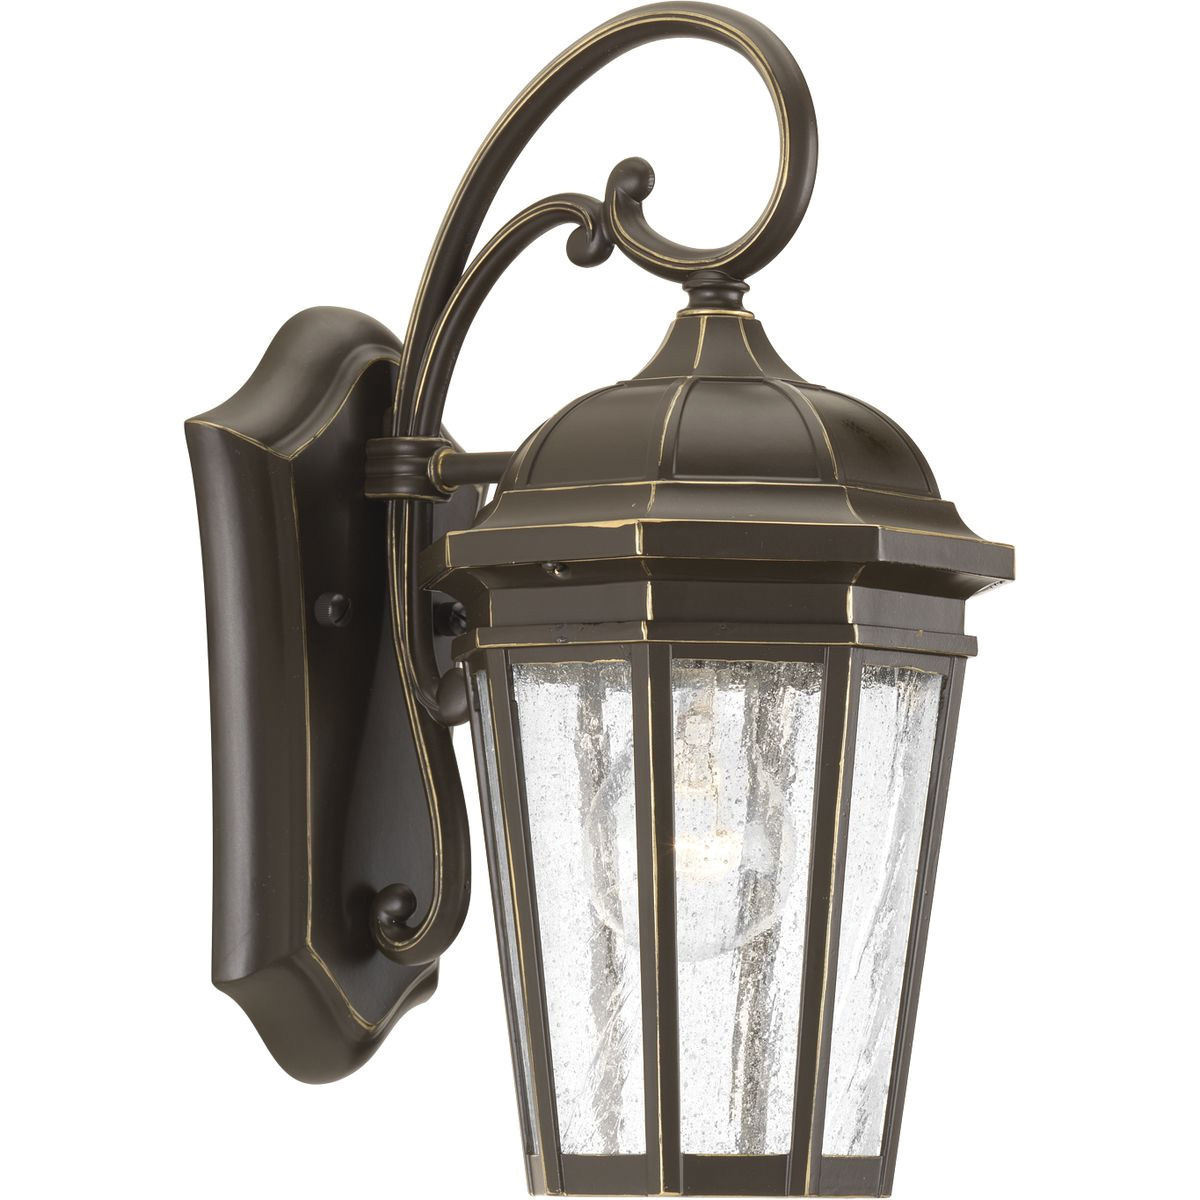 Progress Lighting P560014 020 1 Light Small Wall Lantern 100 Watt